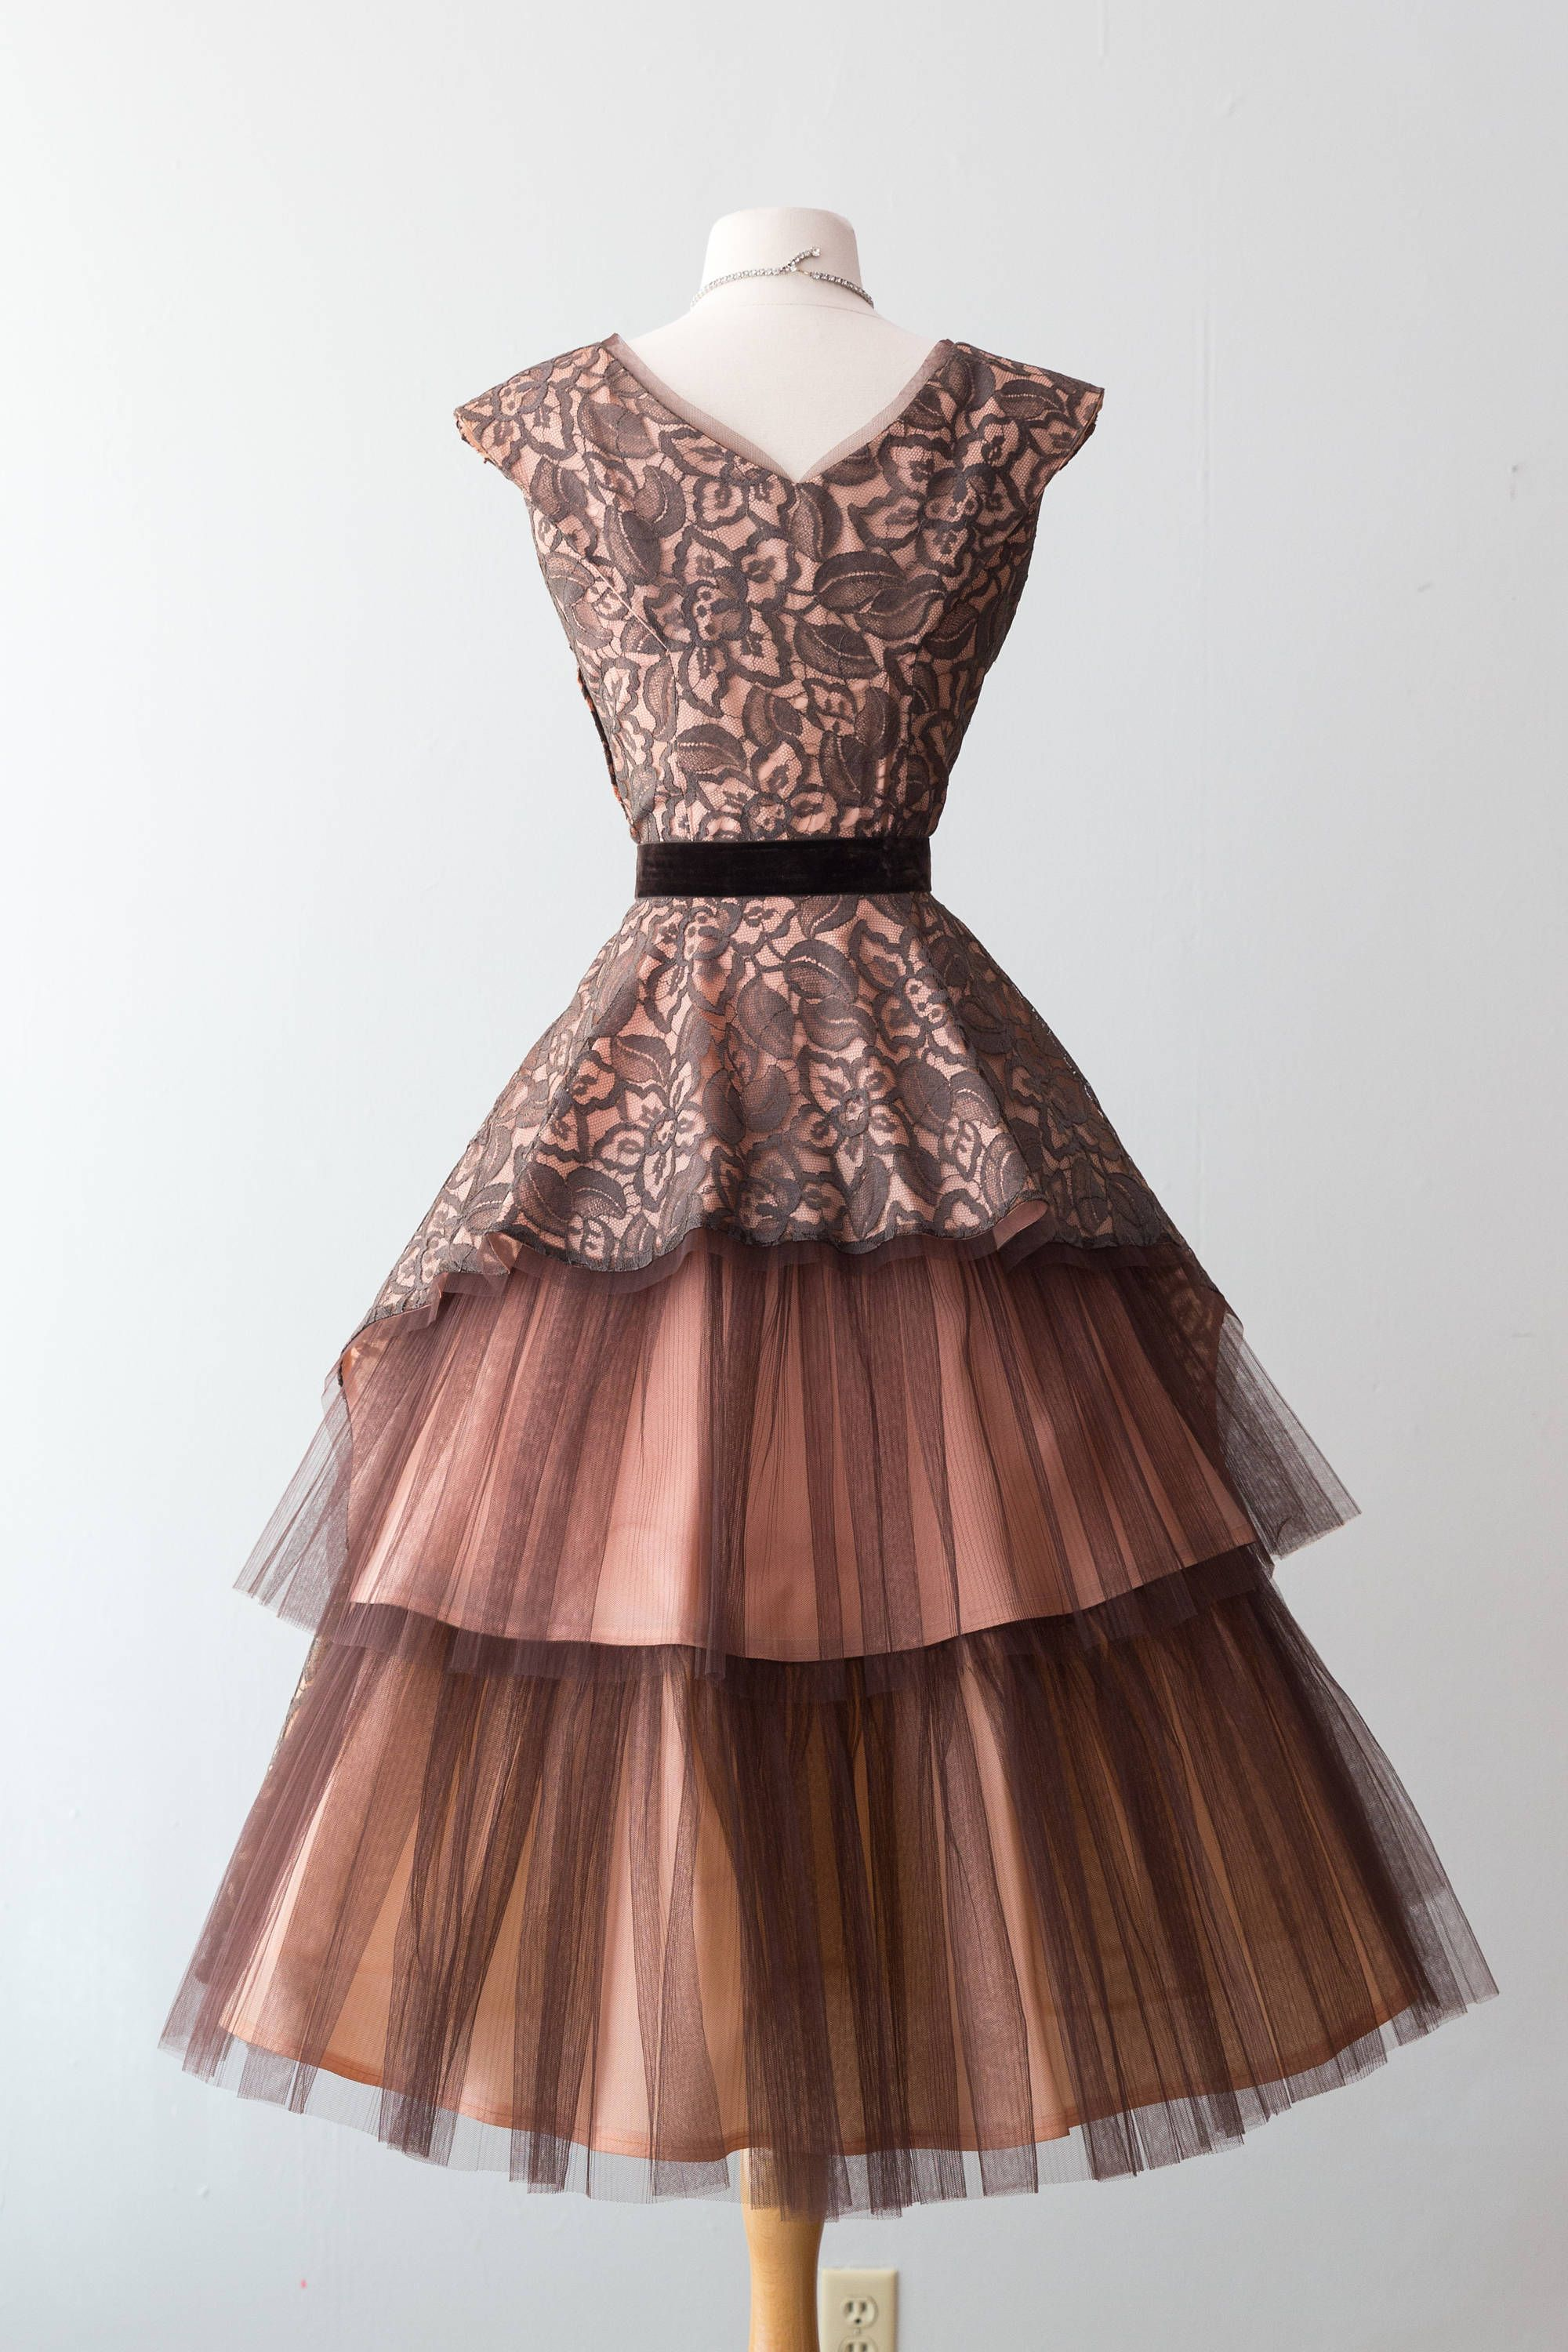 Vintage 1950s Dress 50s Cocktail Party Dress W Chocolate Lace Over Peach Lining Accordion Pleated Tulle Peacock Tail As Schone Kleider Kleider Abendkleid [ 3000 x 2000 Pixel ]